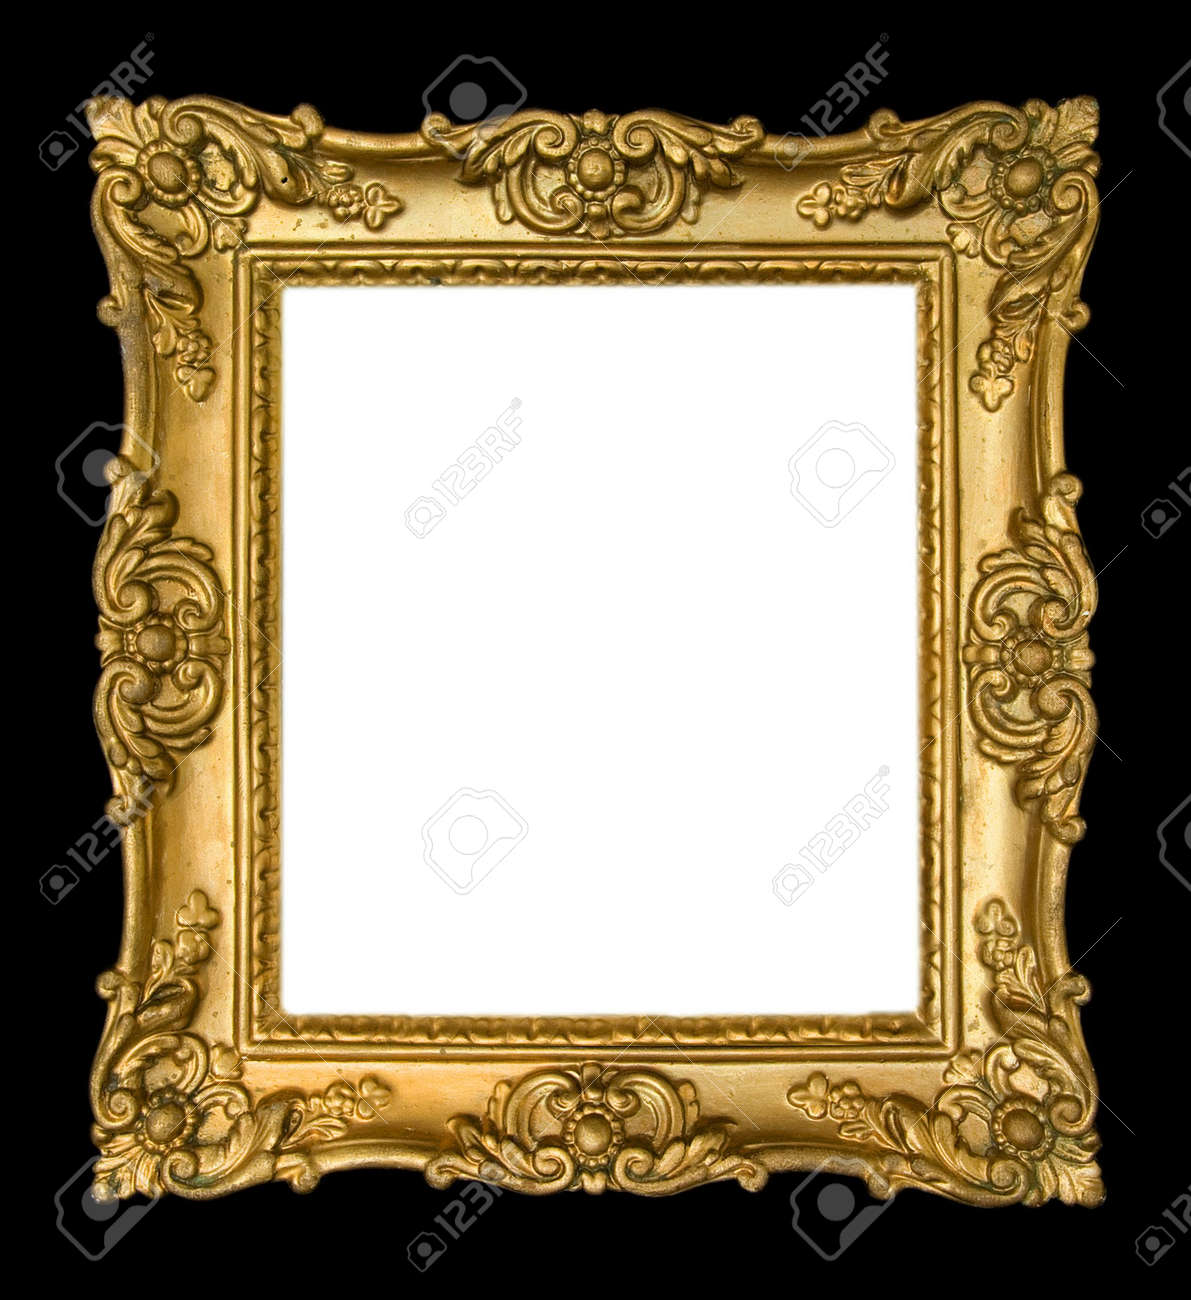 ornate vintage gold frame on black background stock photo 3638112